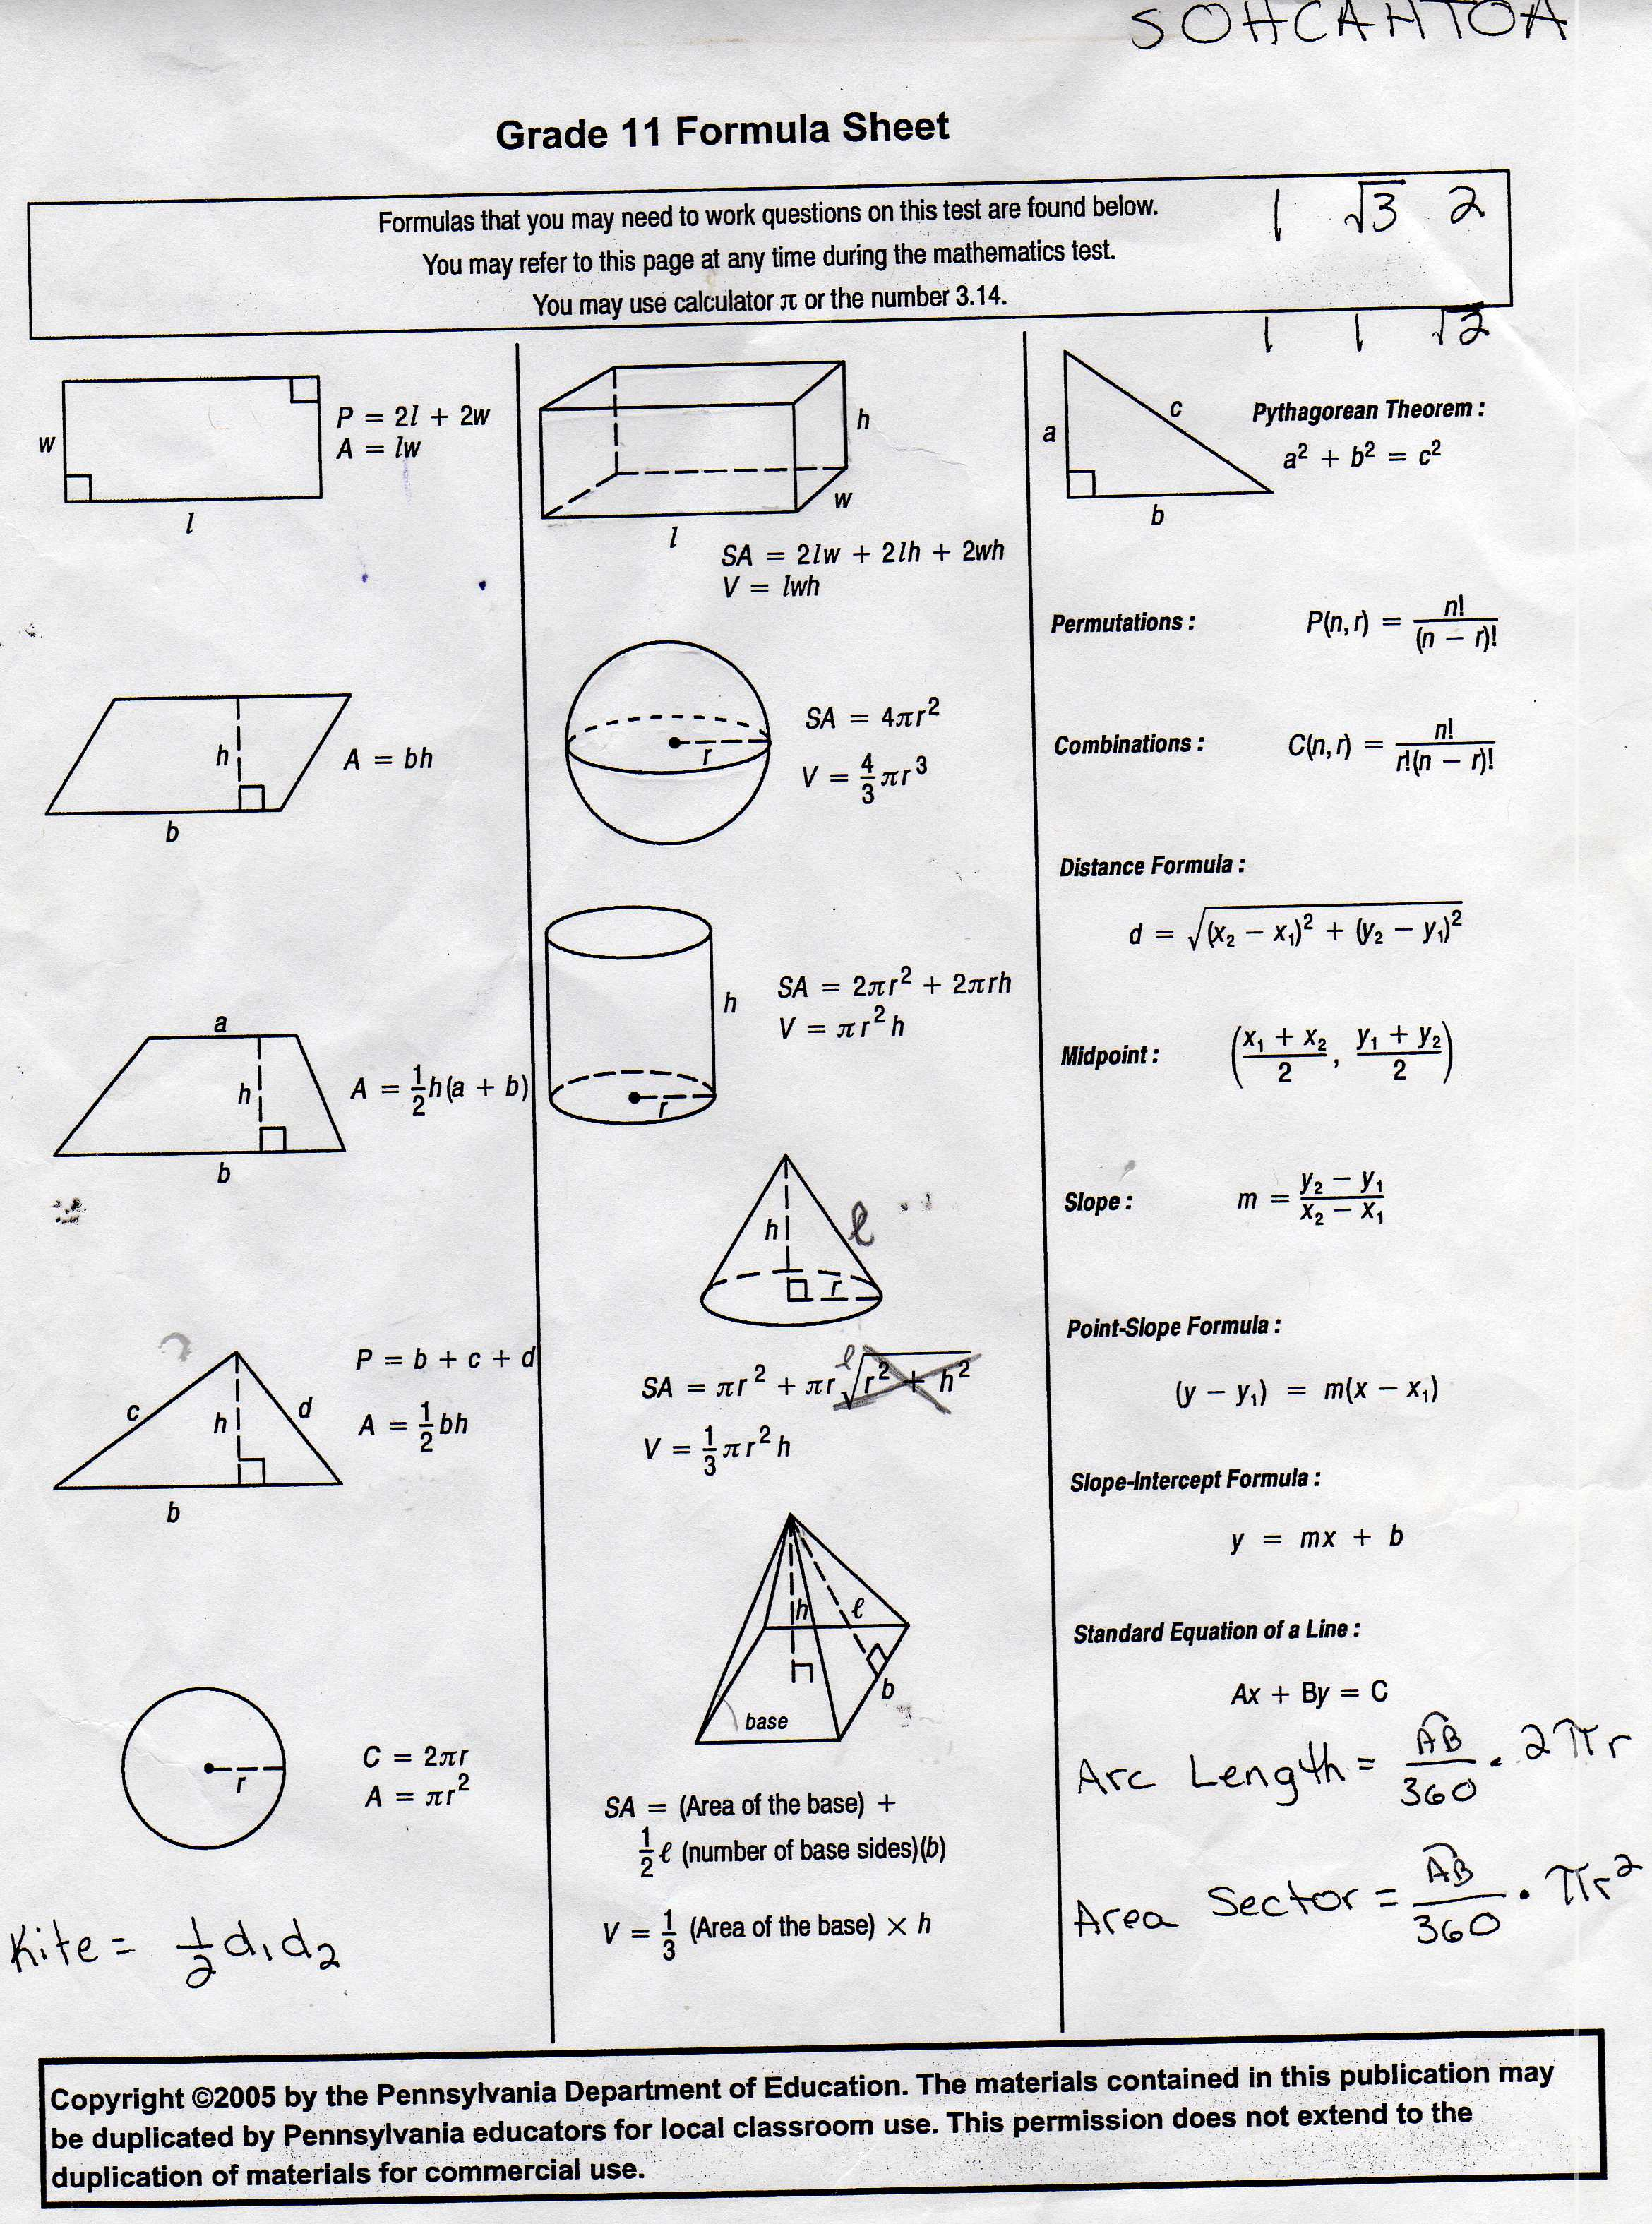 Ulshafer K Honors Geometry – High School Geometry Worksheets